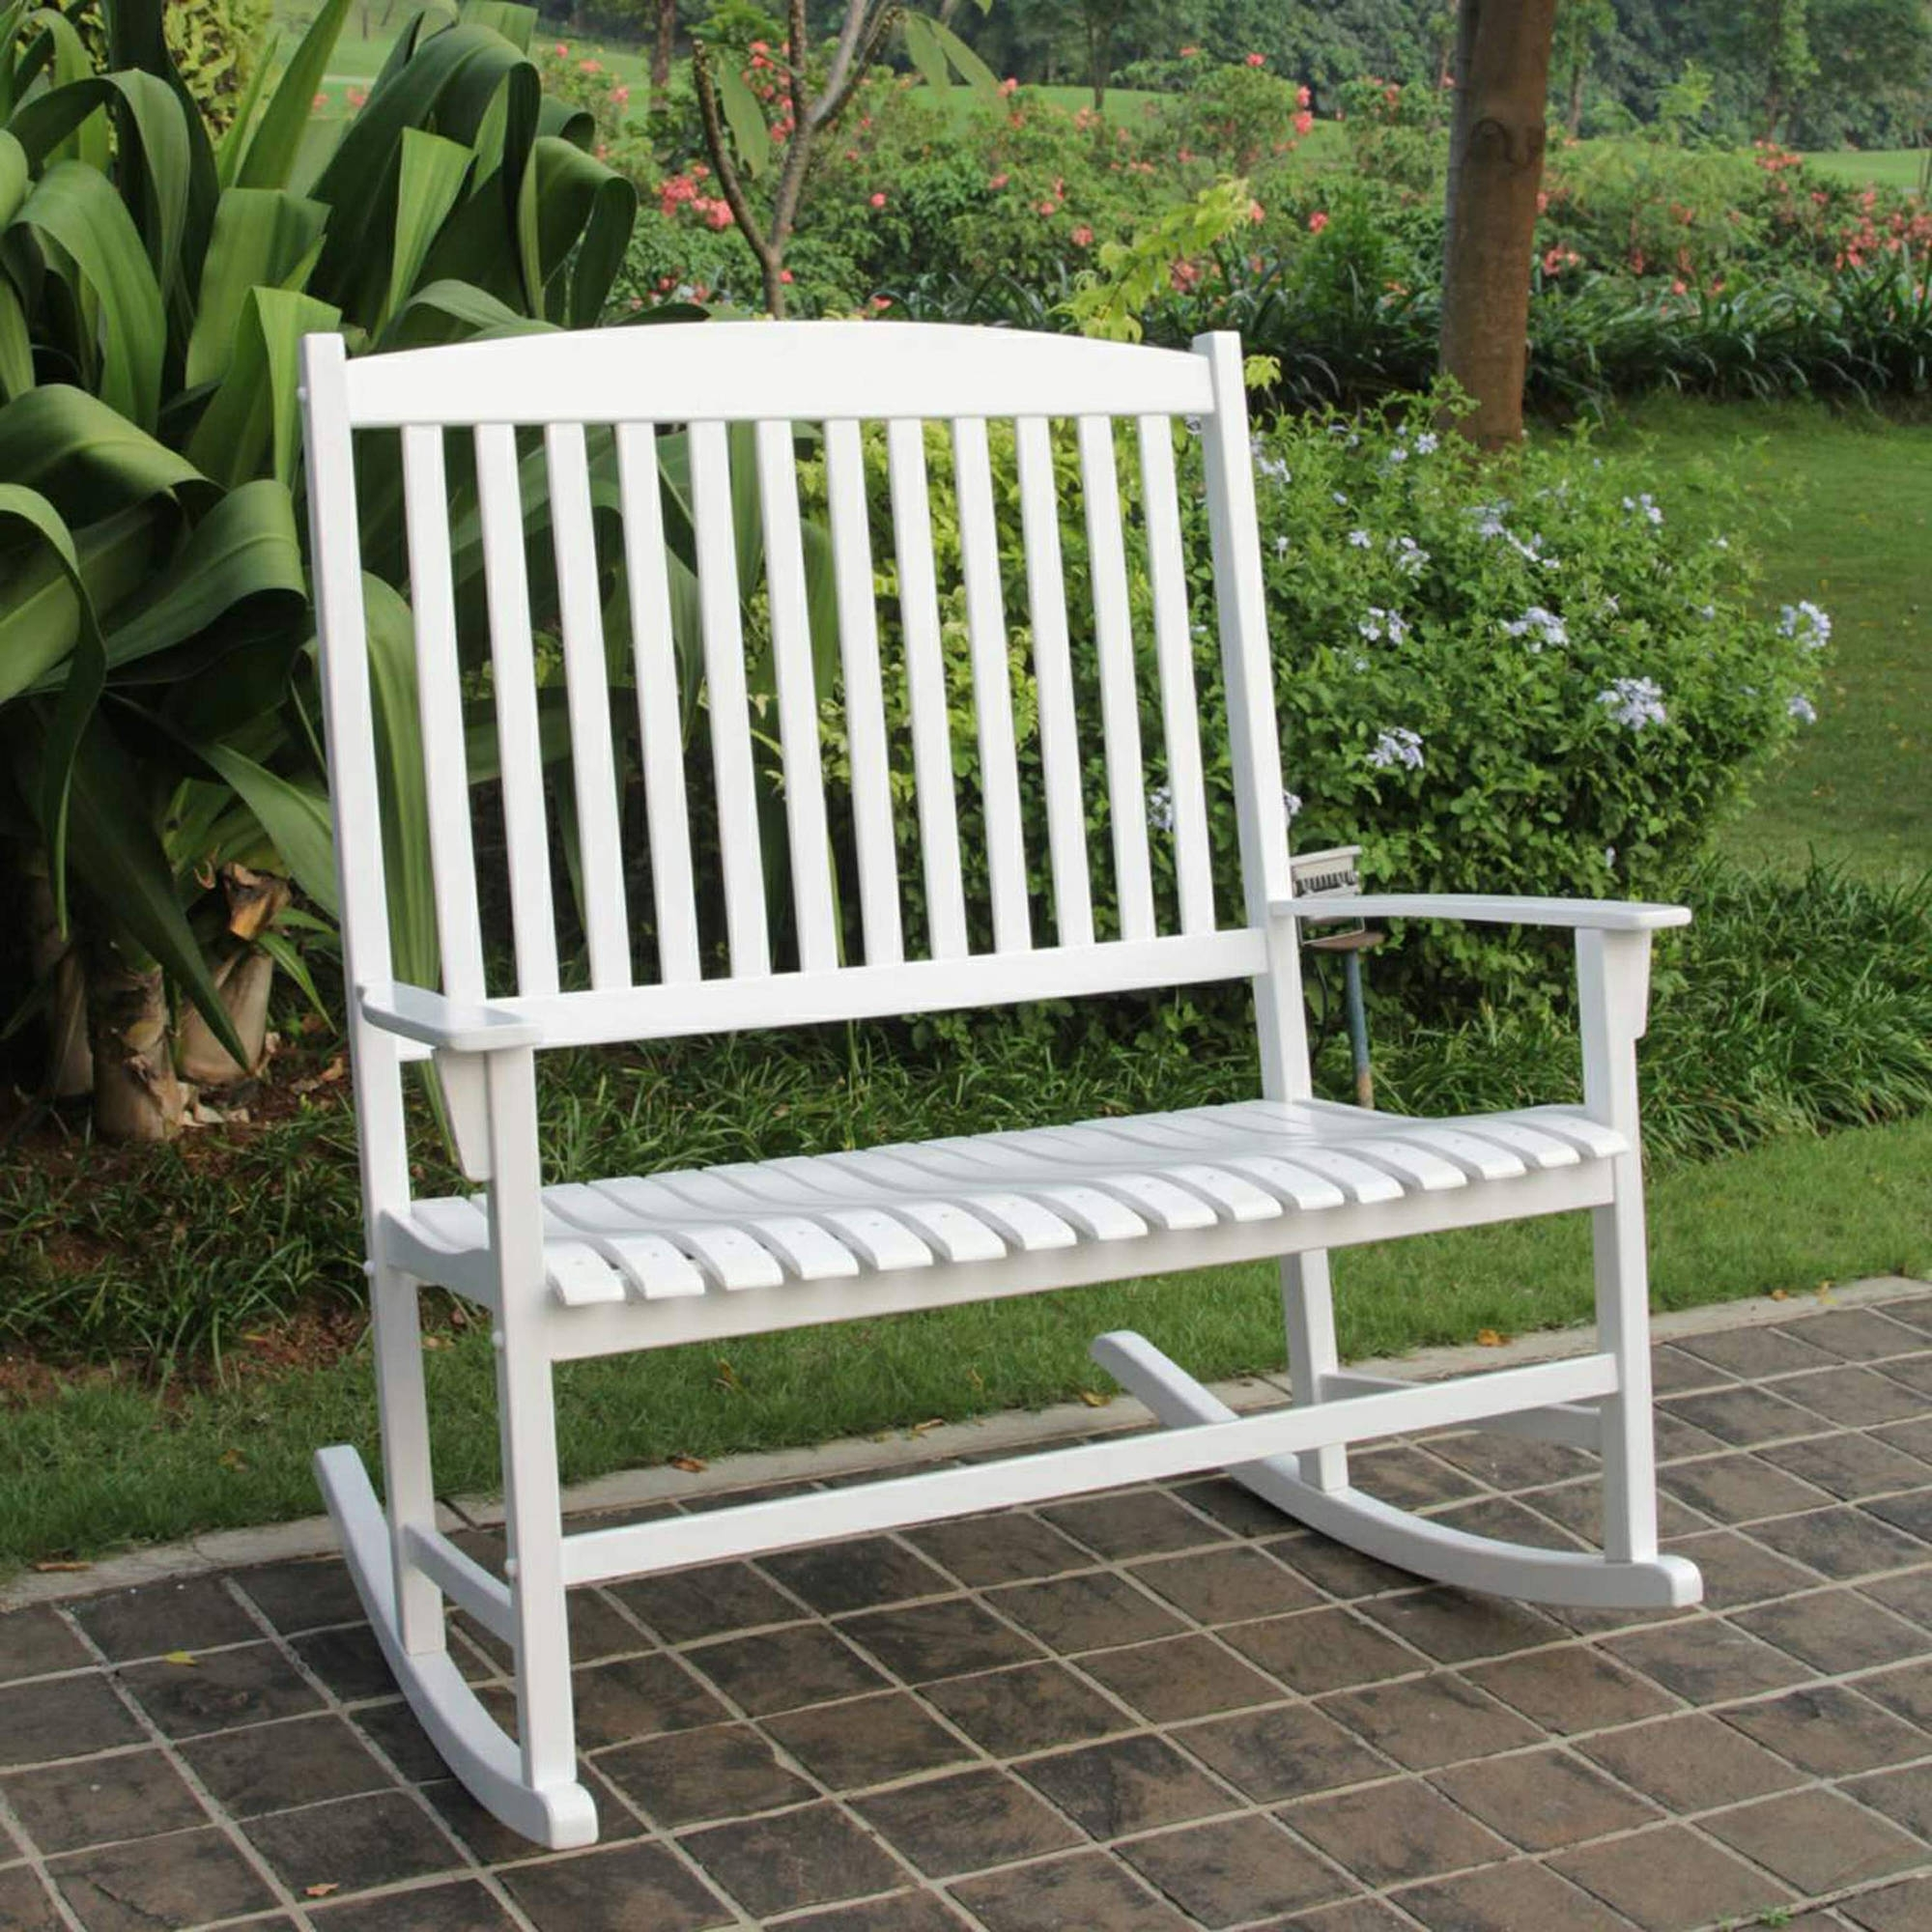 Fashionable White Patio Rocking Chairs In Patio Loveseat White Hardwood Outdoor Rocking Chair For (View 3 of 20)